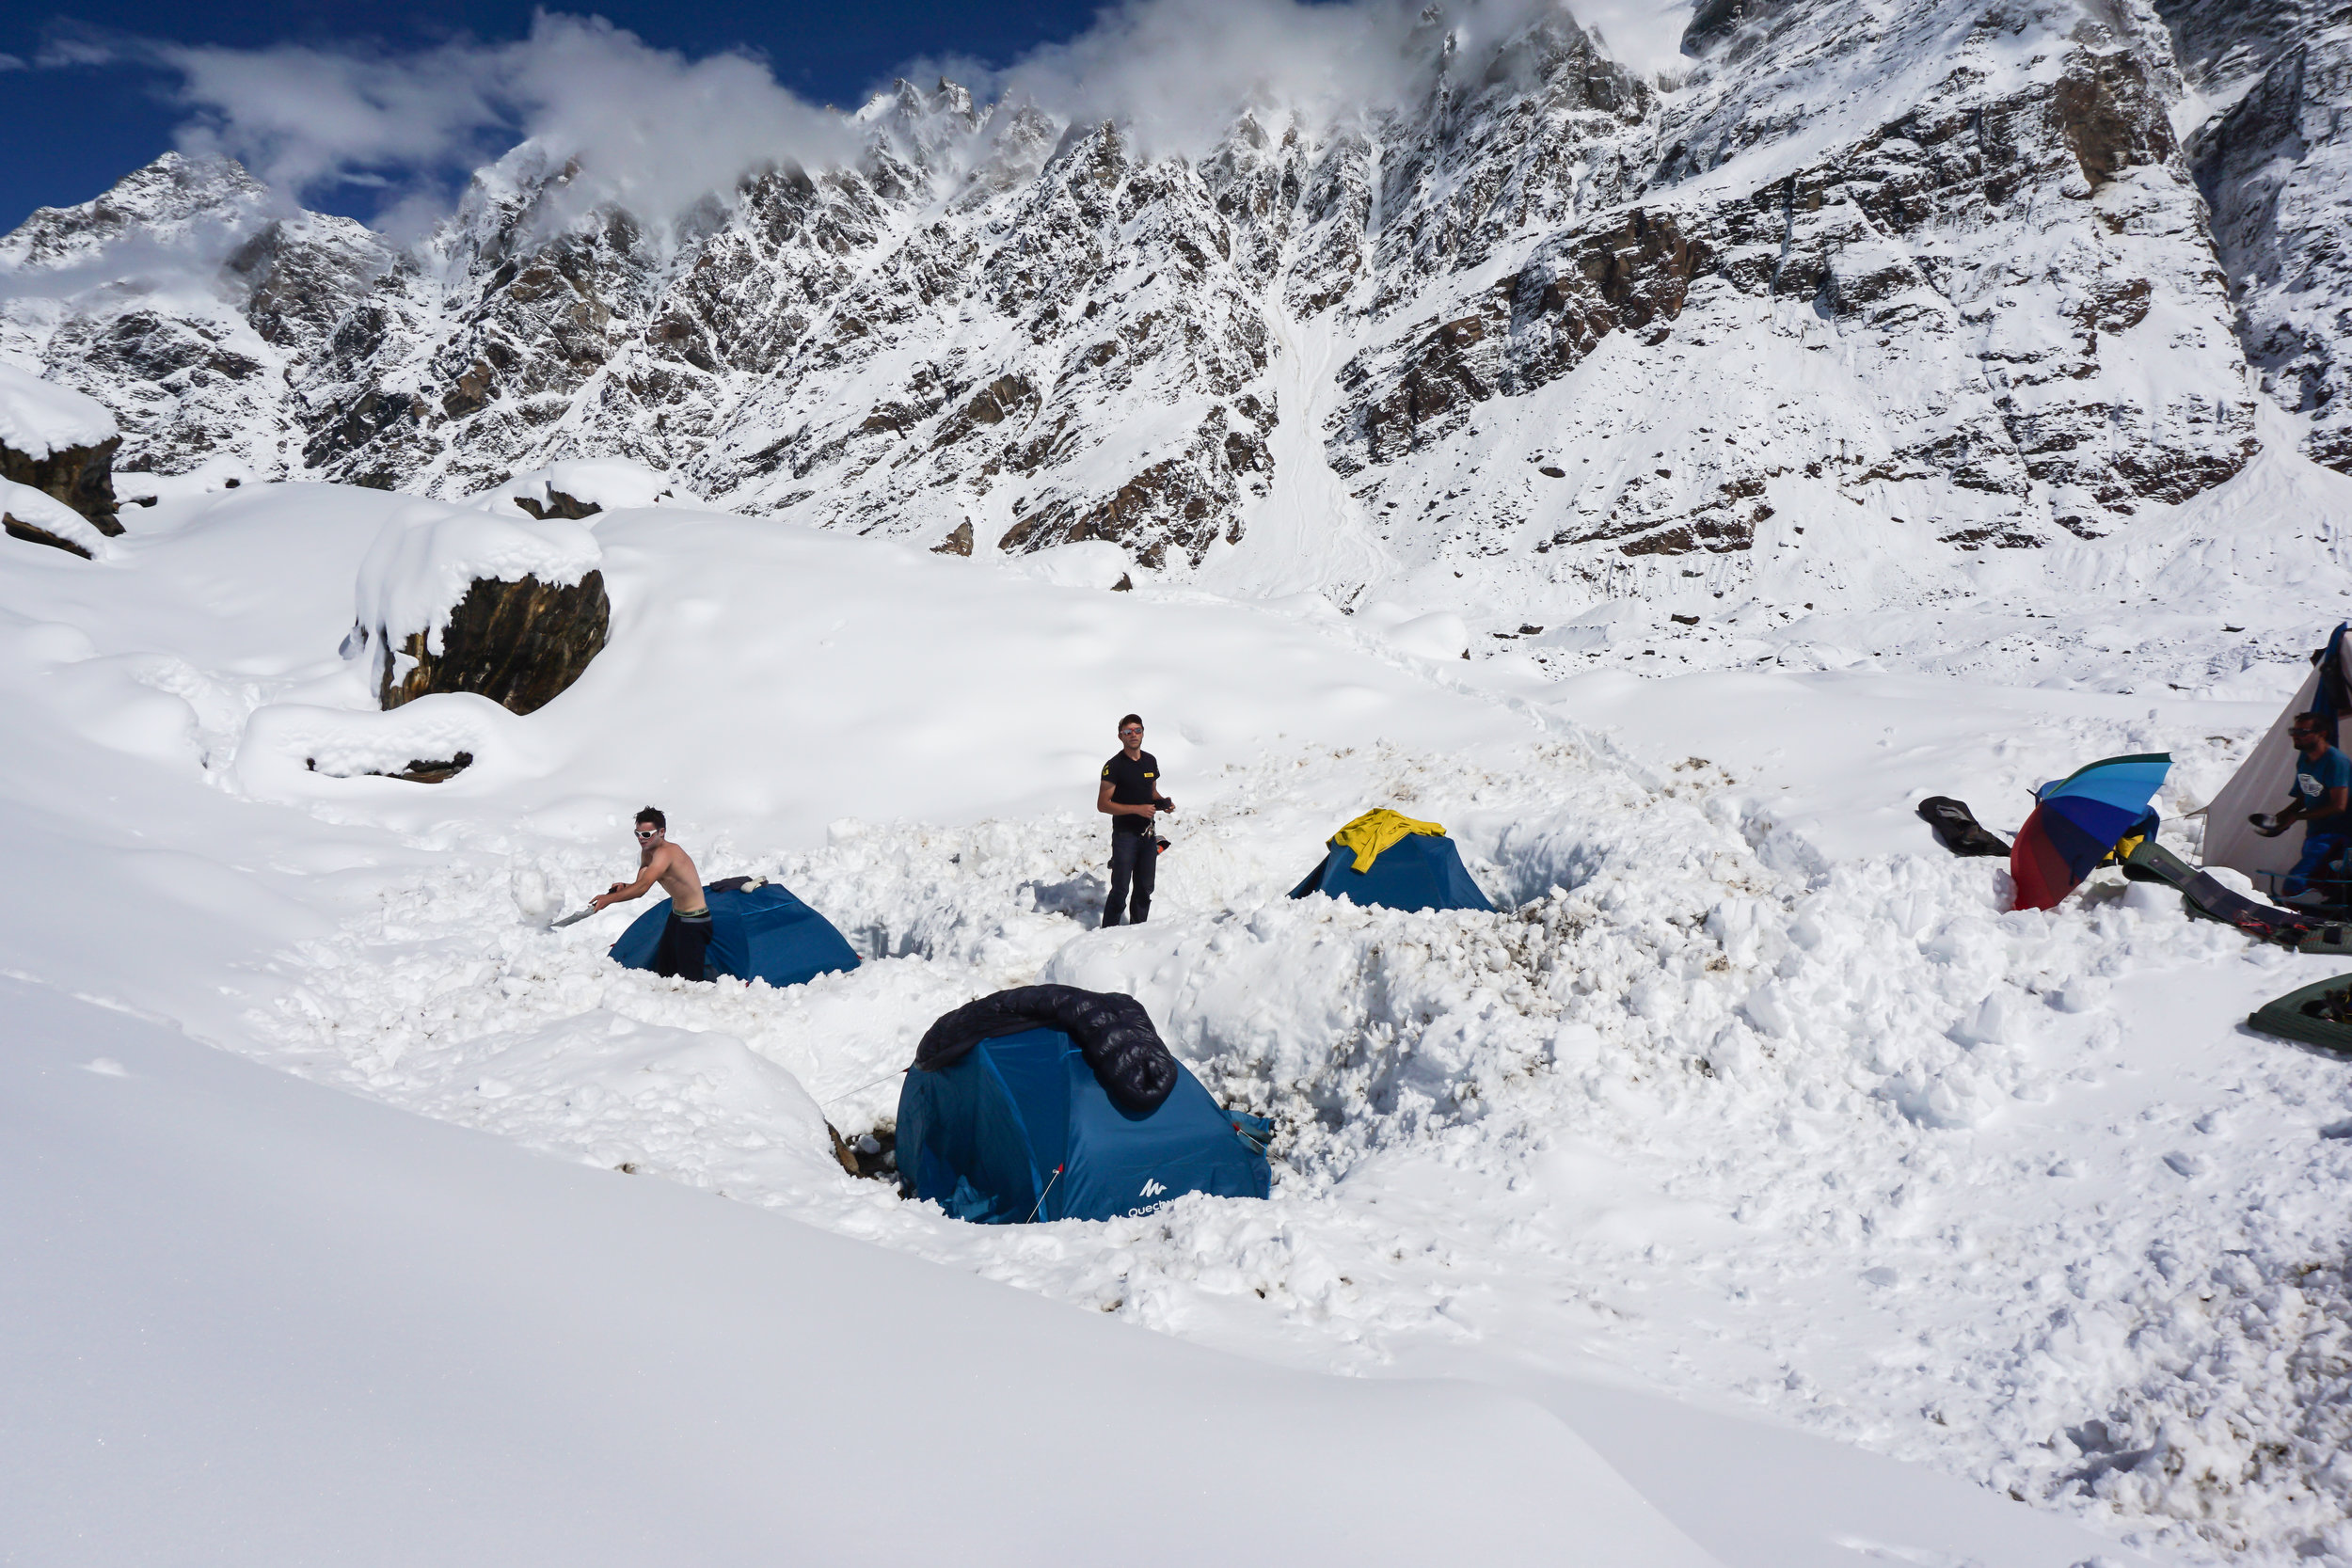 Our base camp in India, a few days after the snowfall. Not ideal!